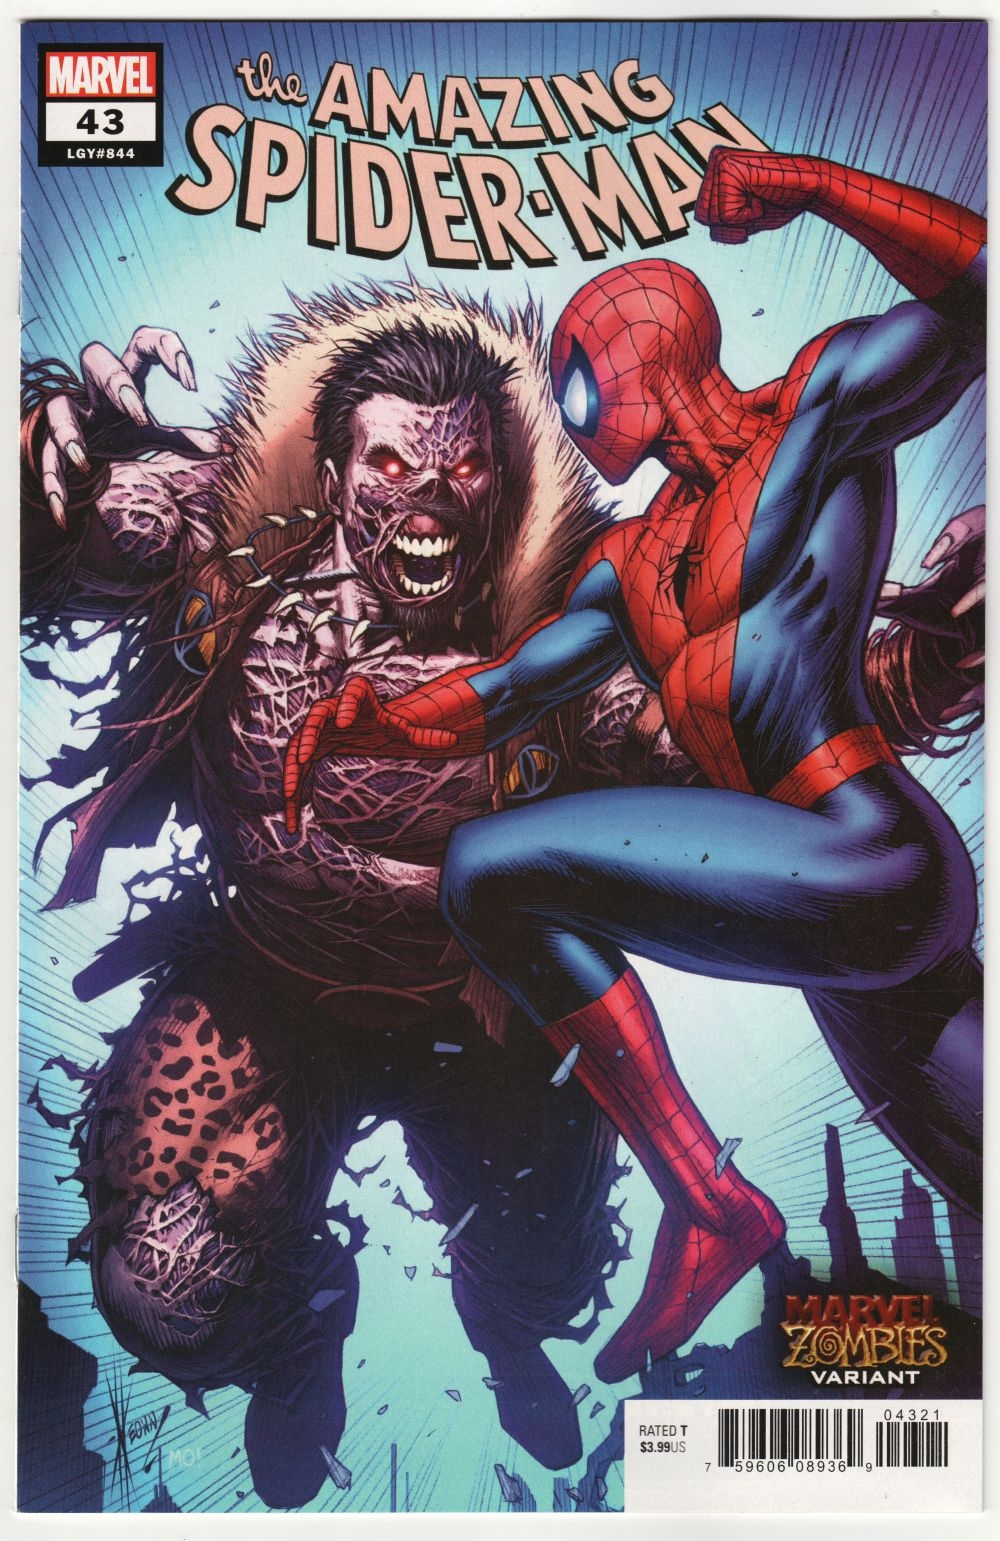 The Amazing Spider Man#43 Variant Edition